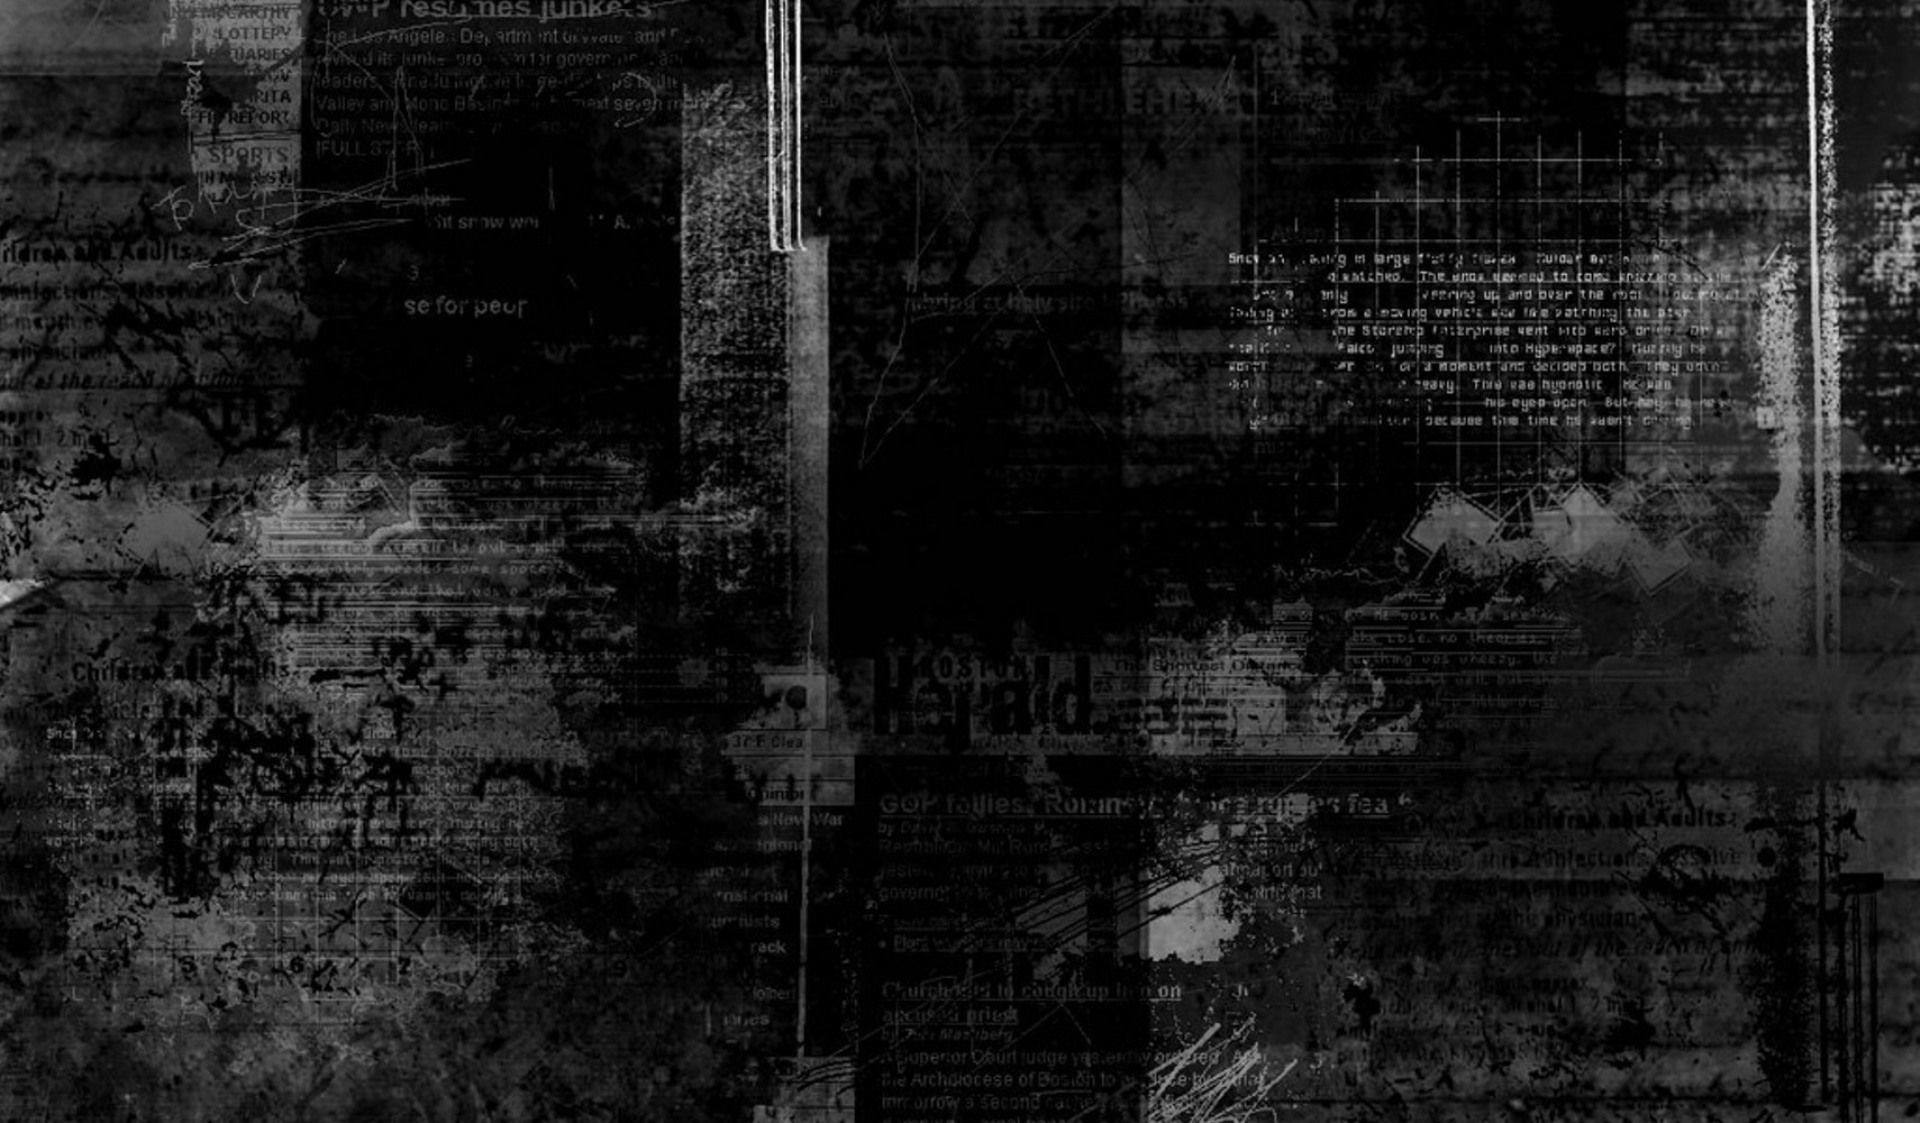 1920x1123 Black Abstract High Definition Wallpaper For Desktop  px 276.87 KB